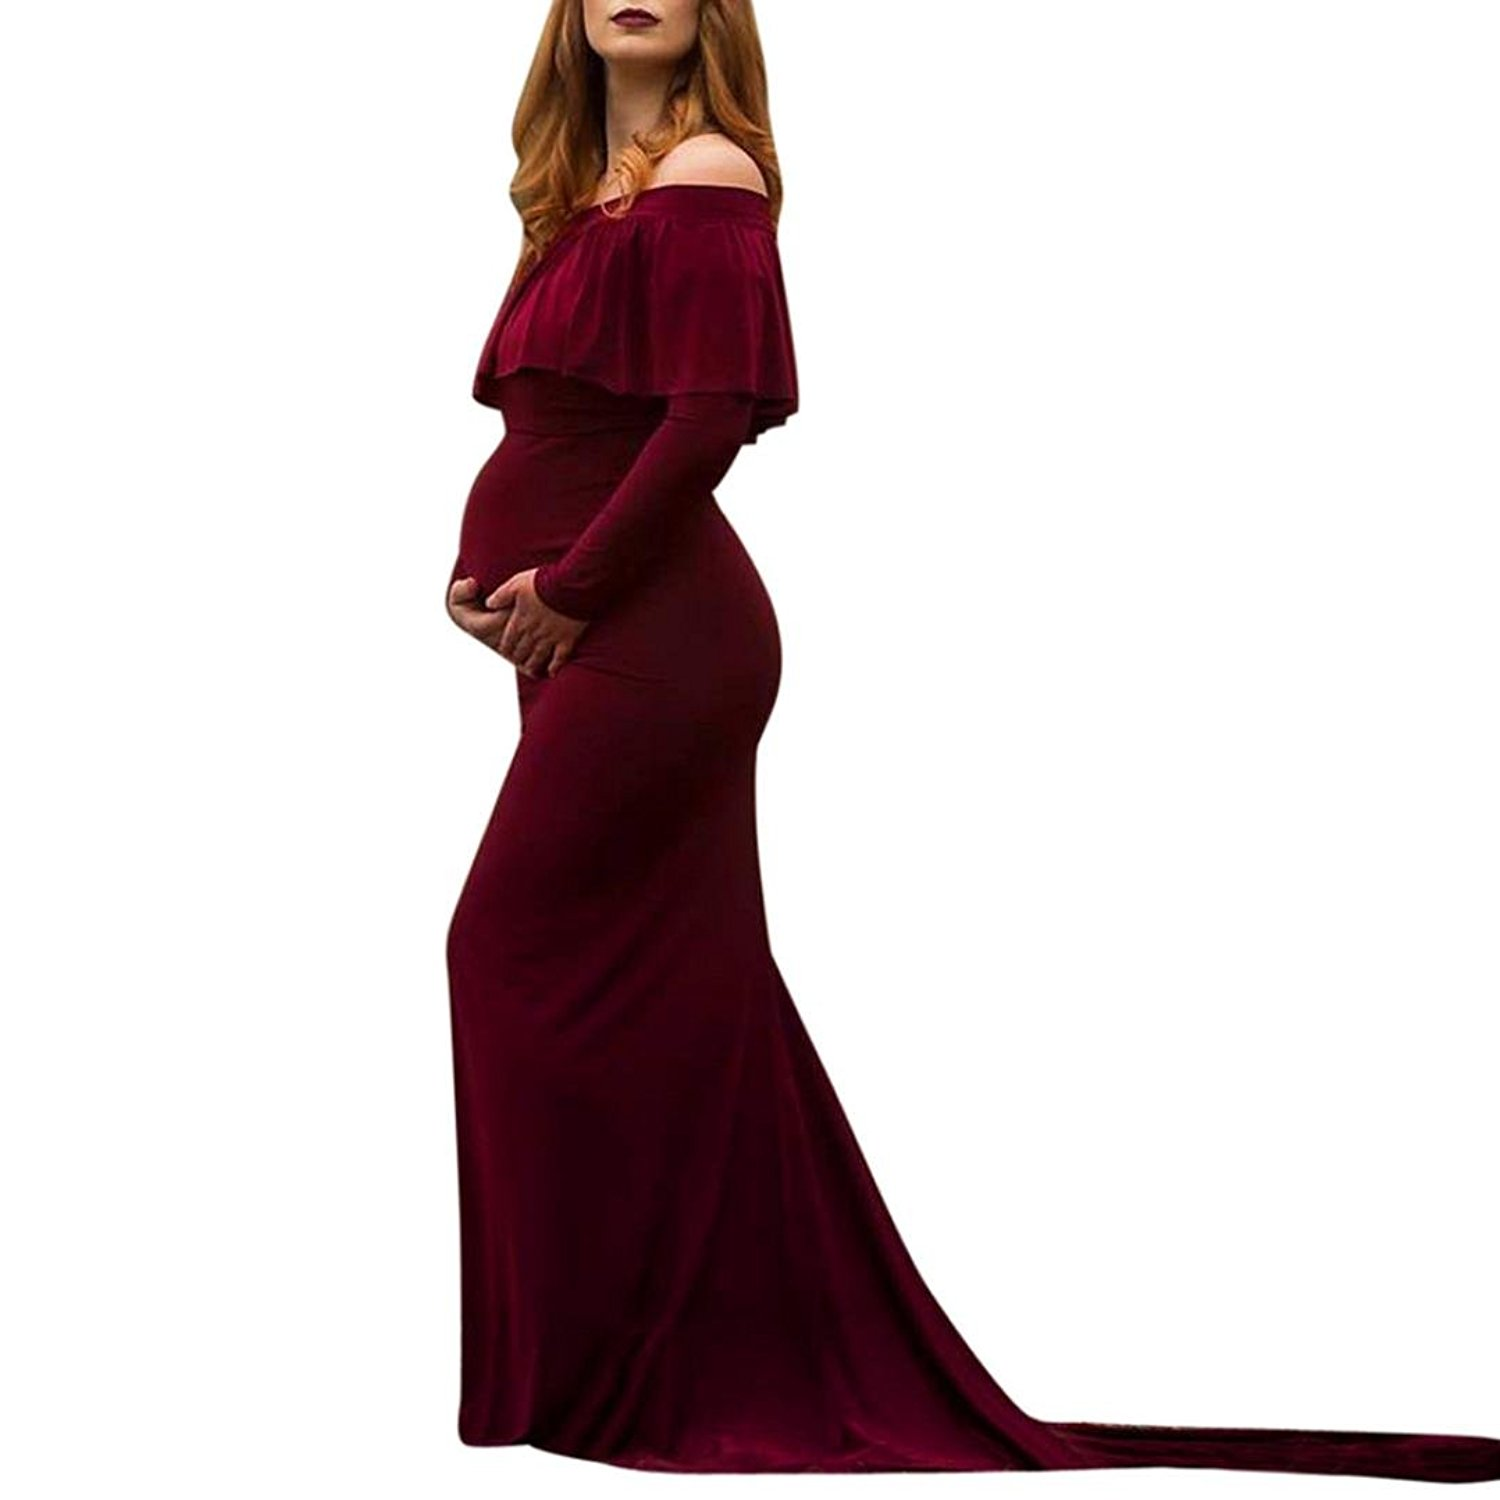 f0aaf7c535c Get Quotations · Taore Sexy Maternity Dress Sheer Lace Gown Short Sleeve  Maxi Photography Dress